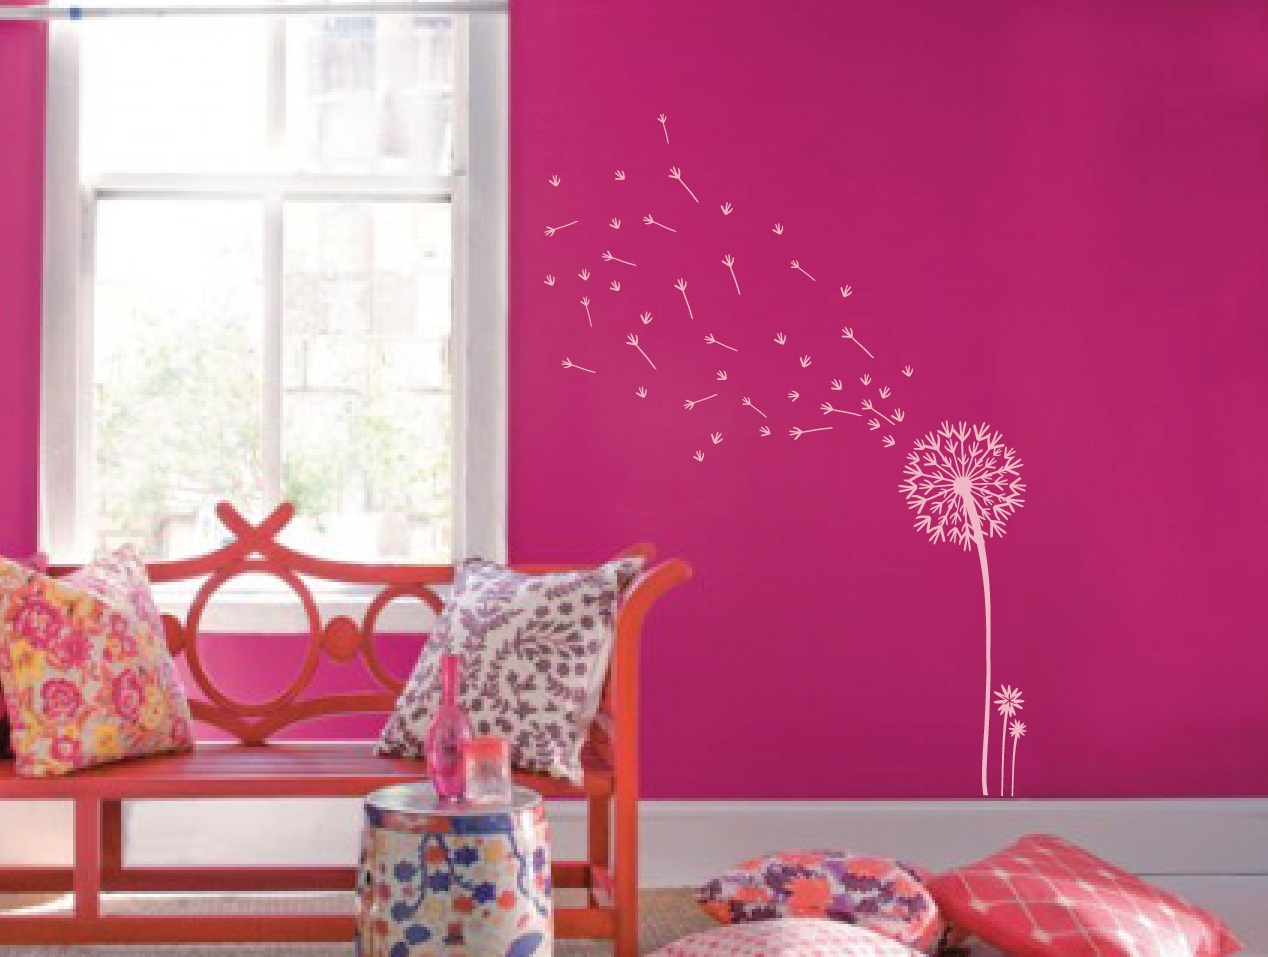 dandelion-blowing-in-the-wind-seeds-vinyl-wall-decal-1156.jpg